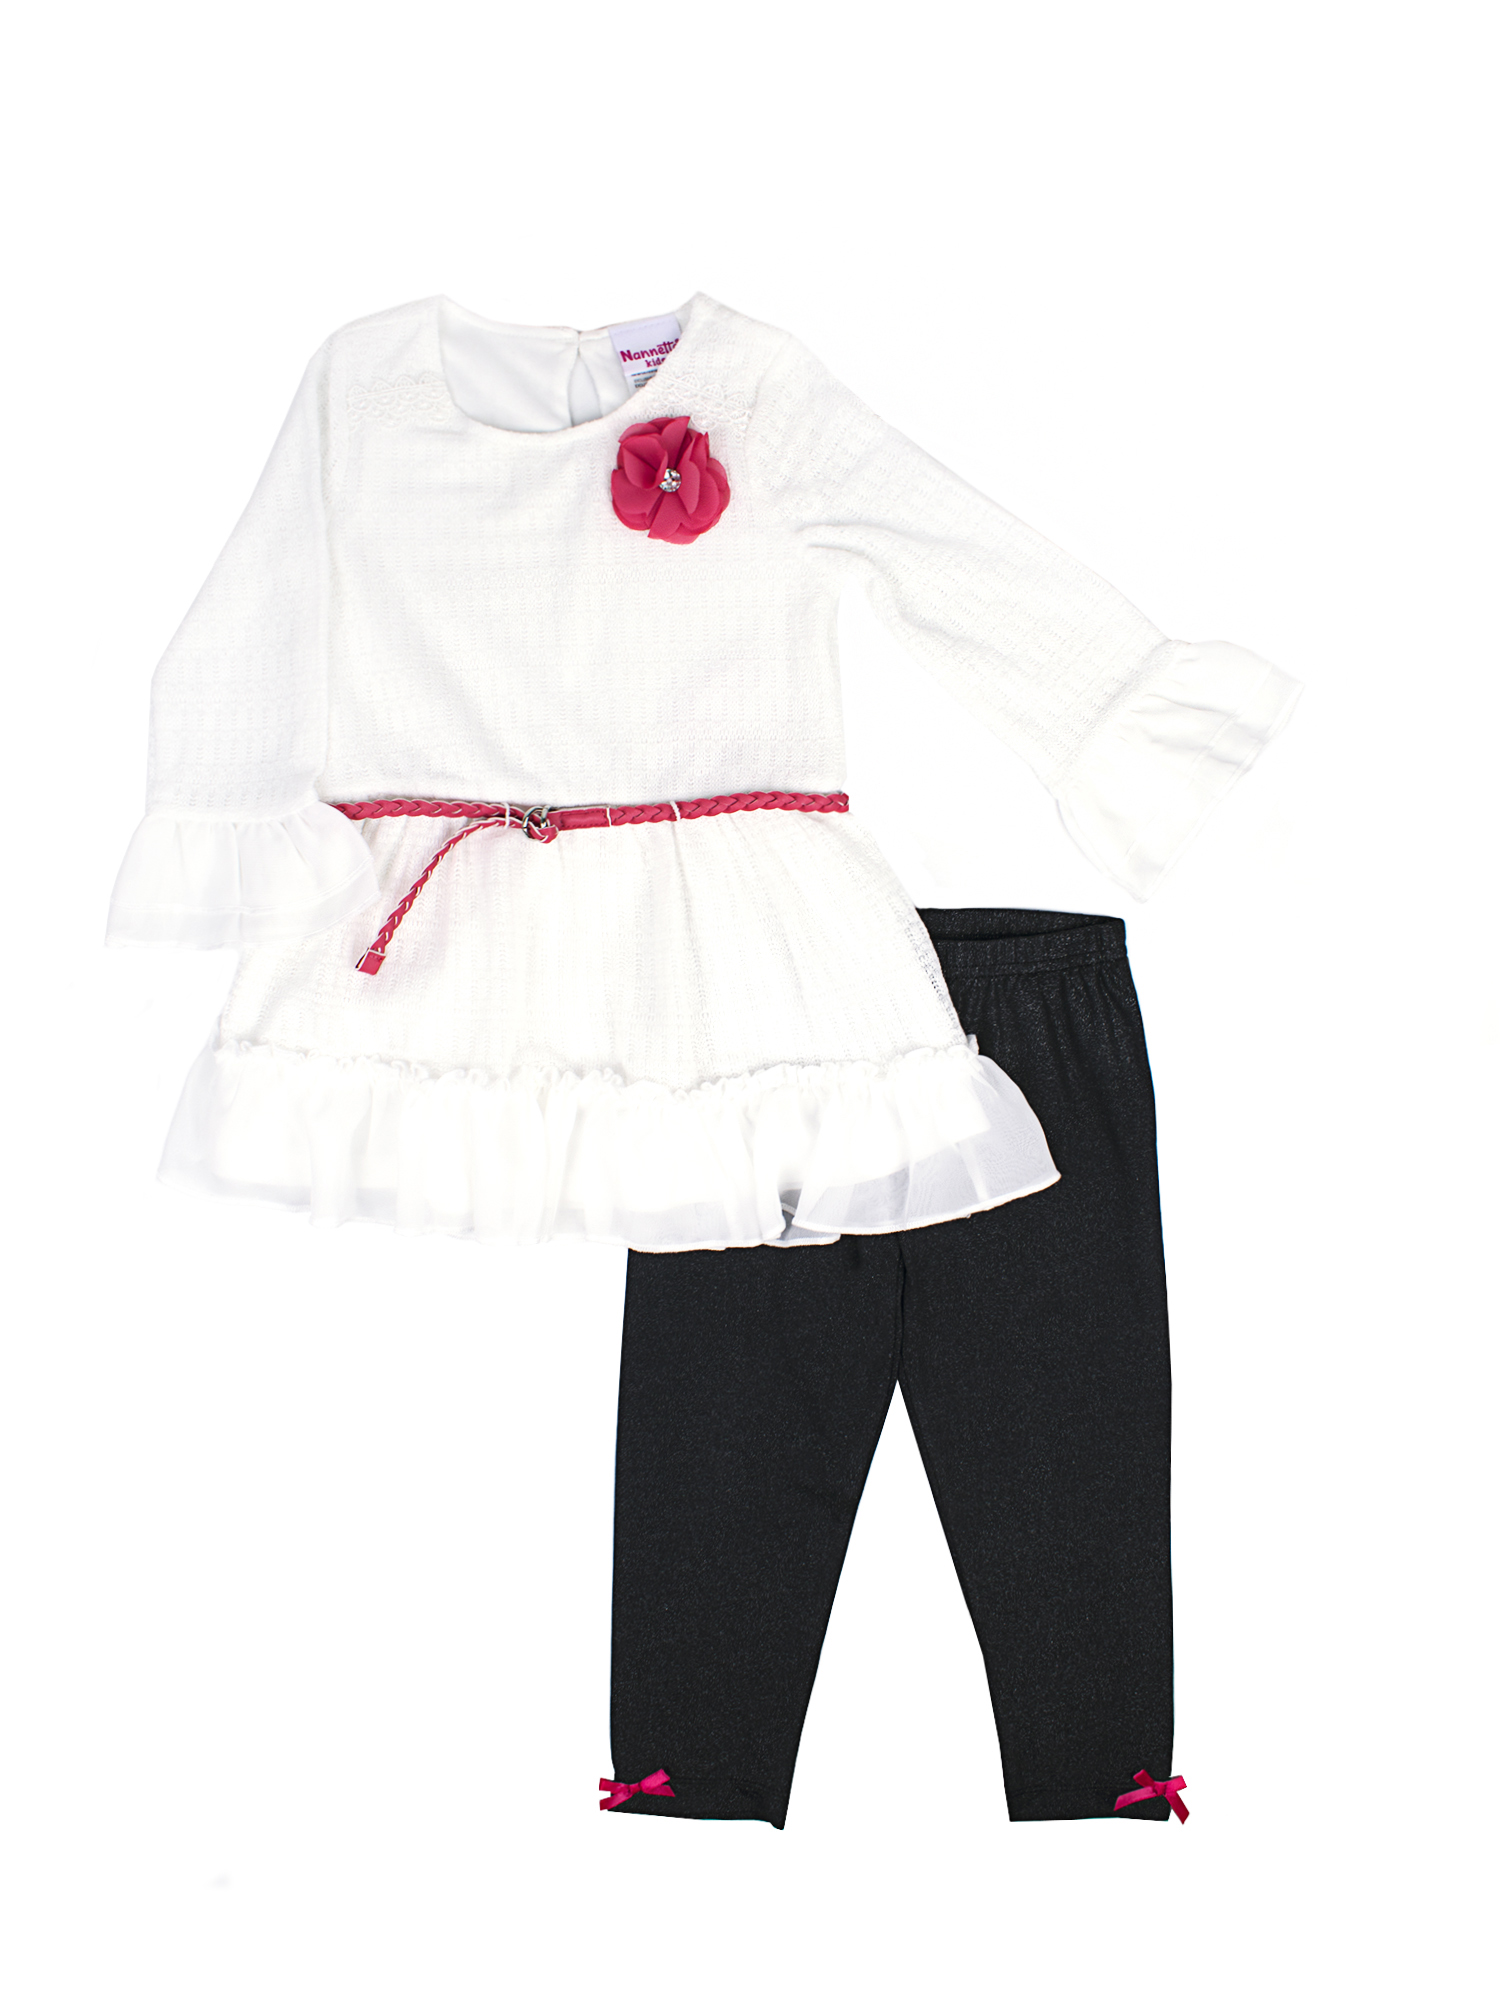 Novelty Lace Chiffon Top and Legging, 2-Piece Outfit Set with Braided Belt (Little Girls)